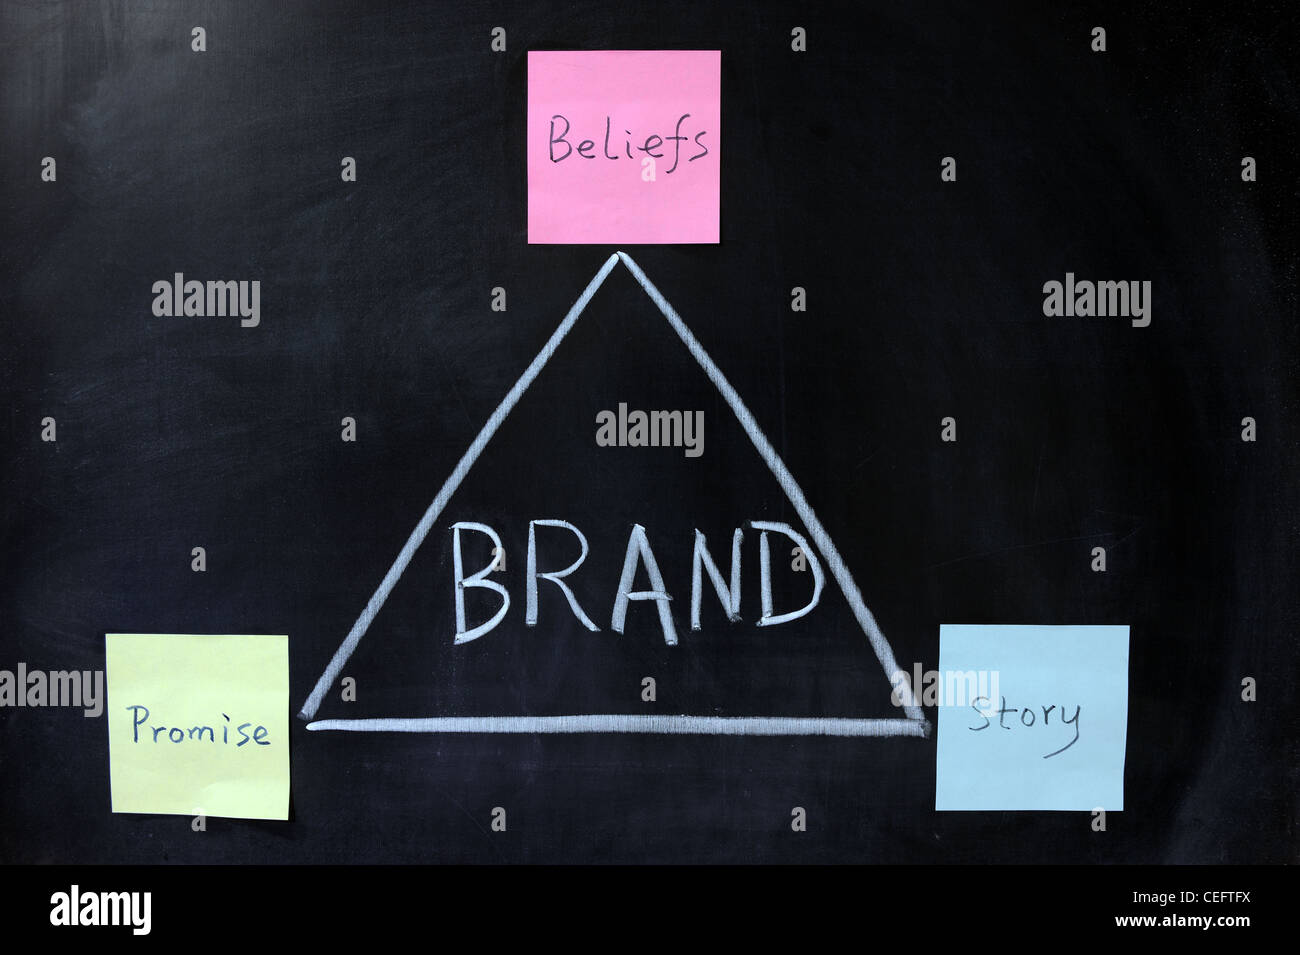 Chalk drawing - Concept of brand - Stock Image